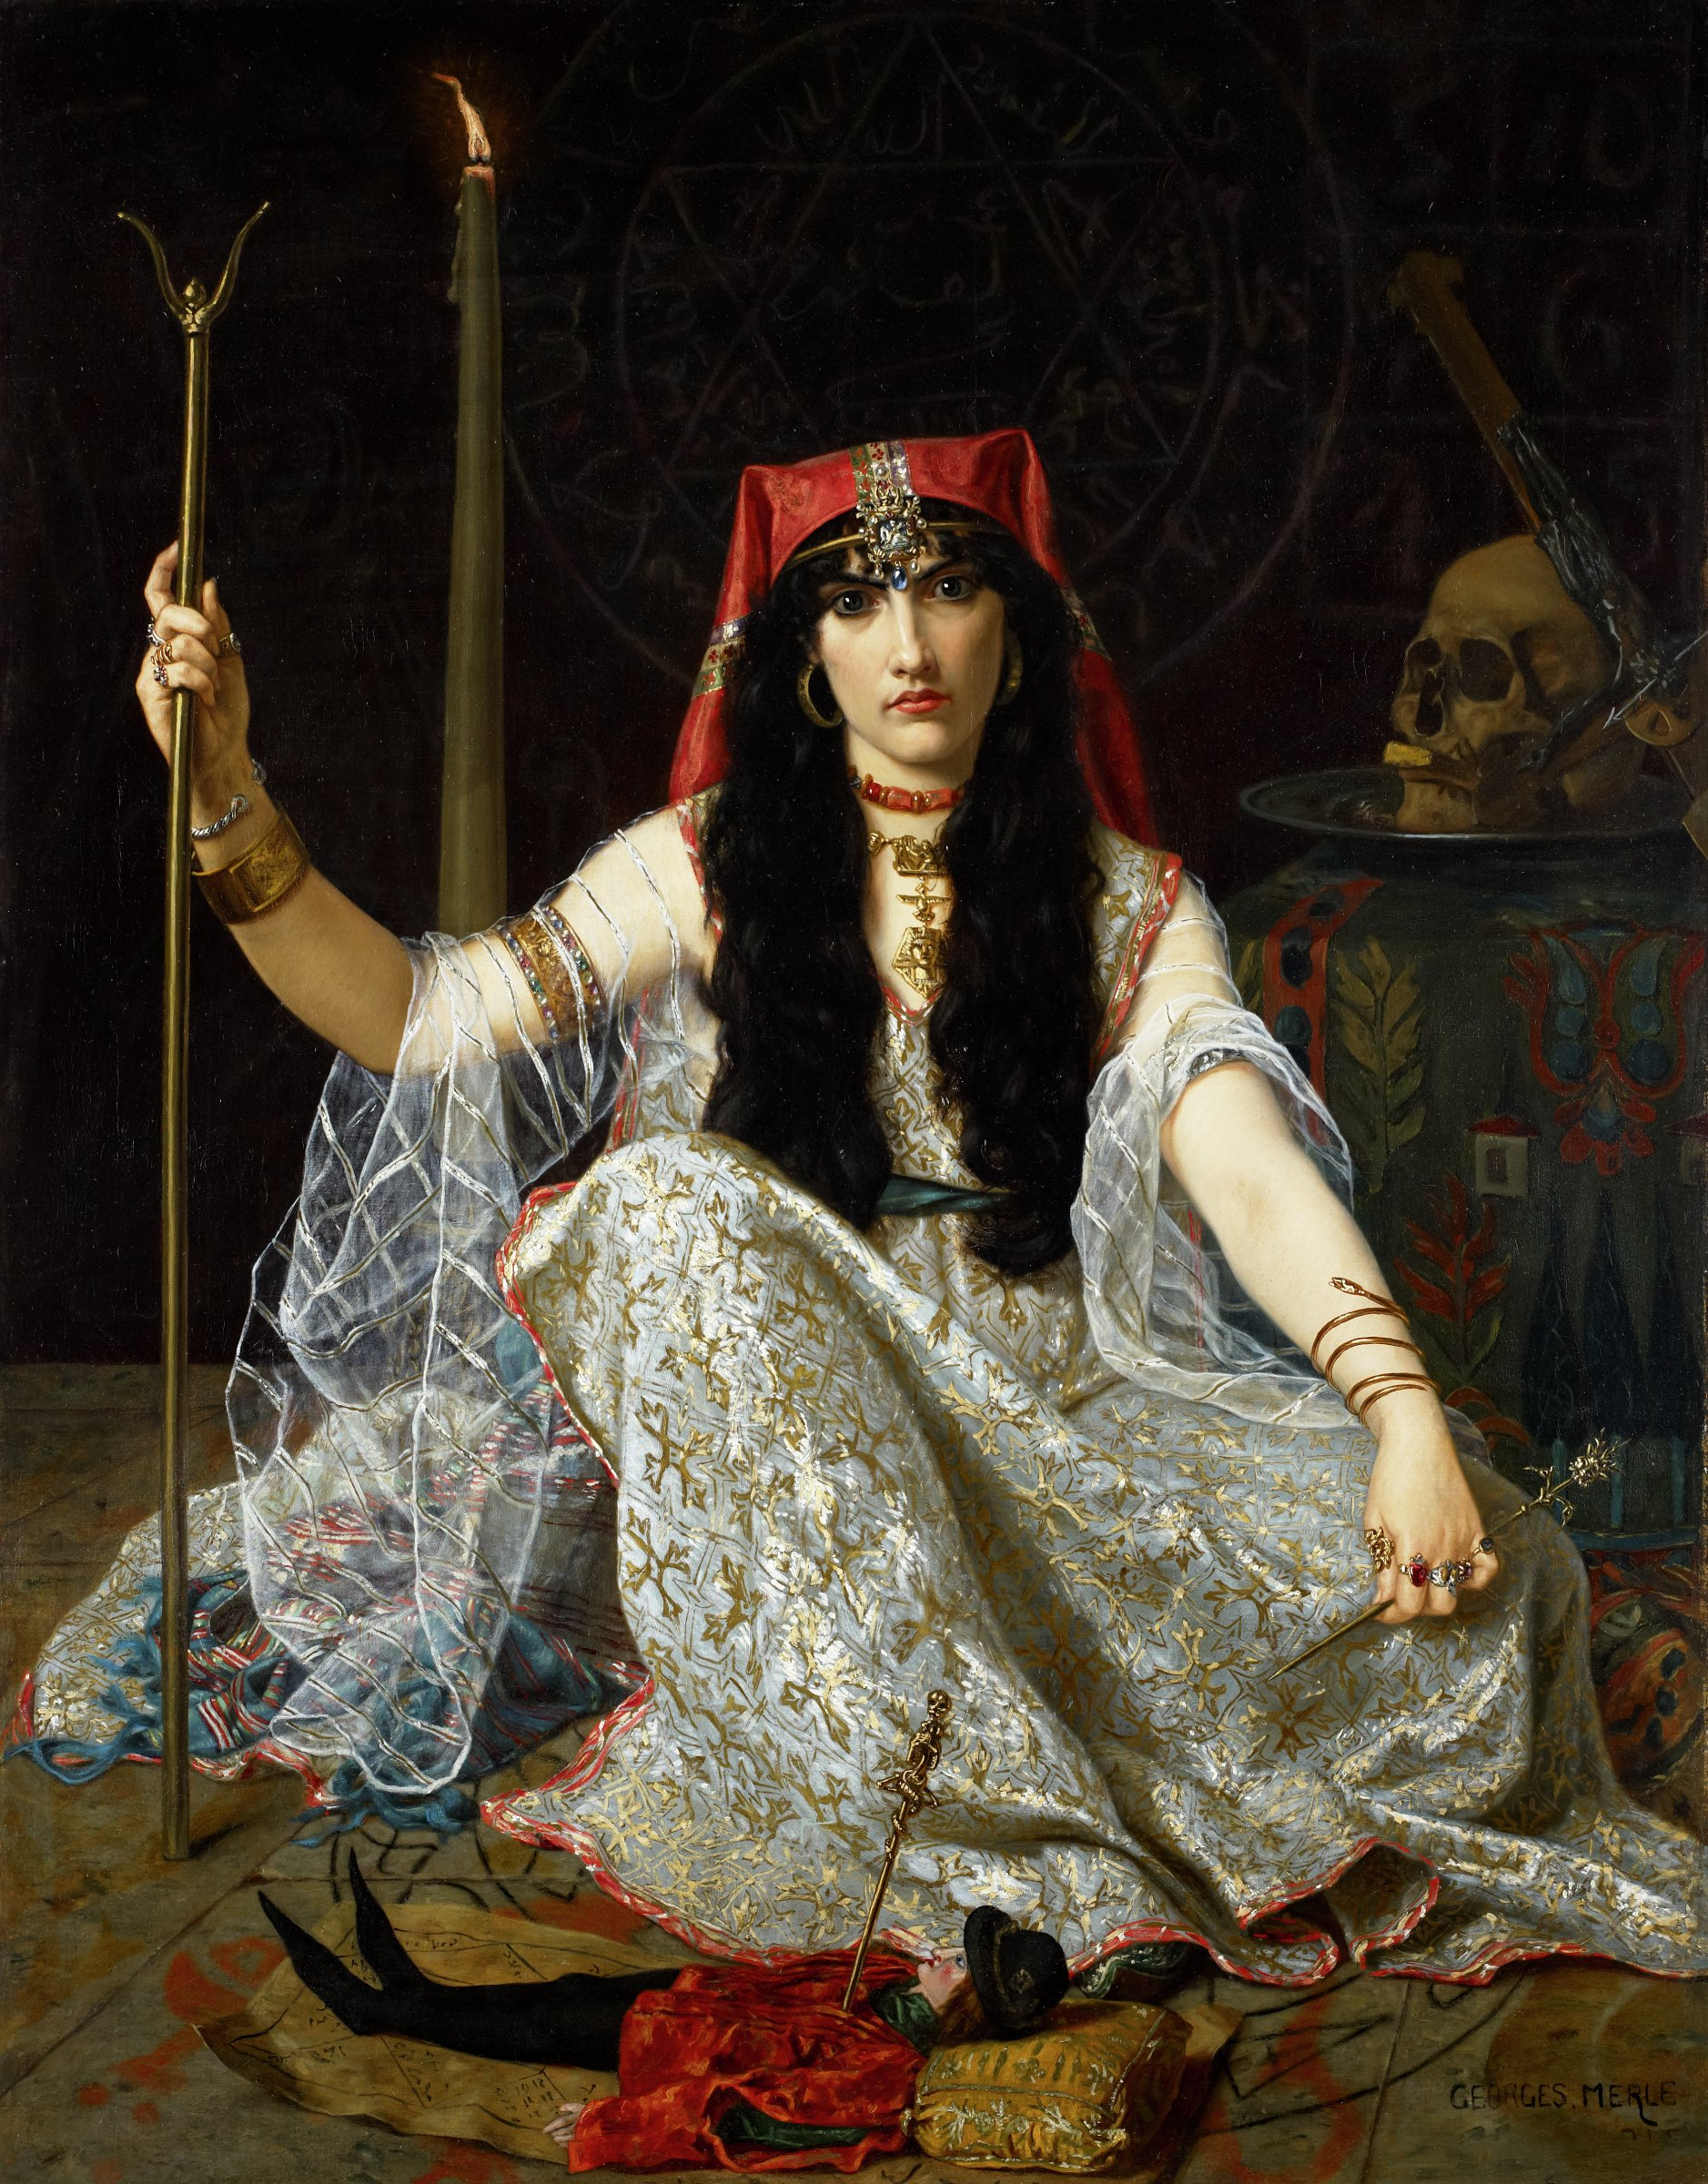 The painting is dominated by a seated female figure gazing directly at the viewer. She wears a dress of white and gold material, edged in red, with long gauzy sleeves; a red head covering; and elaborately decorated jewelry including a headband, earrings, multiple necklaces, bracelets, and rings. She holds a staff in her proper right hand, and a long, decorated pin in her left. Before her is a doll dressed in a medieval costume, with a pin stuck through his heart. A tall, slender candle is just behind her proper right arm. On the other side is a table covered with a cloth. On the table is a platter with a skull and an upside-down crucifix. The female figure is seated within a pentacle inscribed on the floor; another is directly behind her on the wall. Also on the back wall, to the left of the pentacle, is a skeleton; to the right of the pentacle is a series of numbers inscribed in squares.